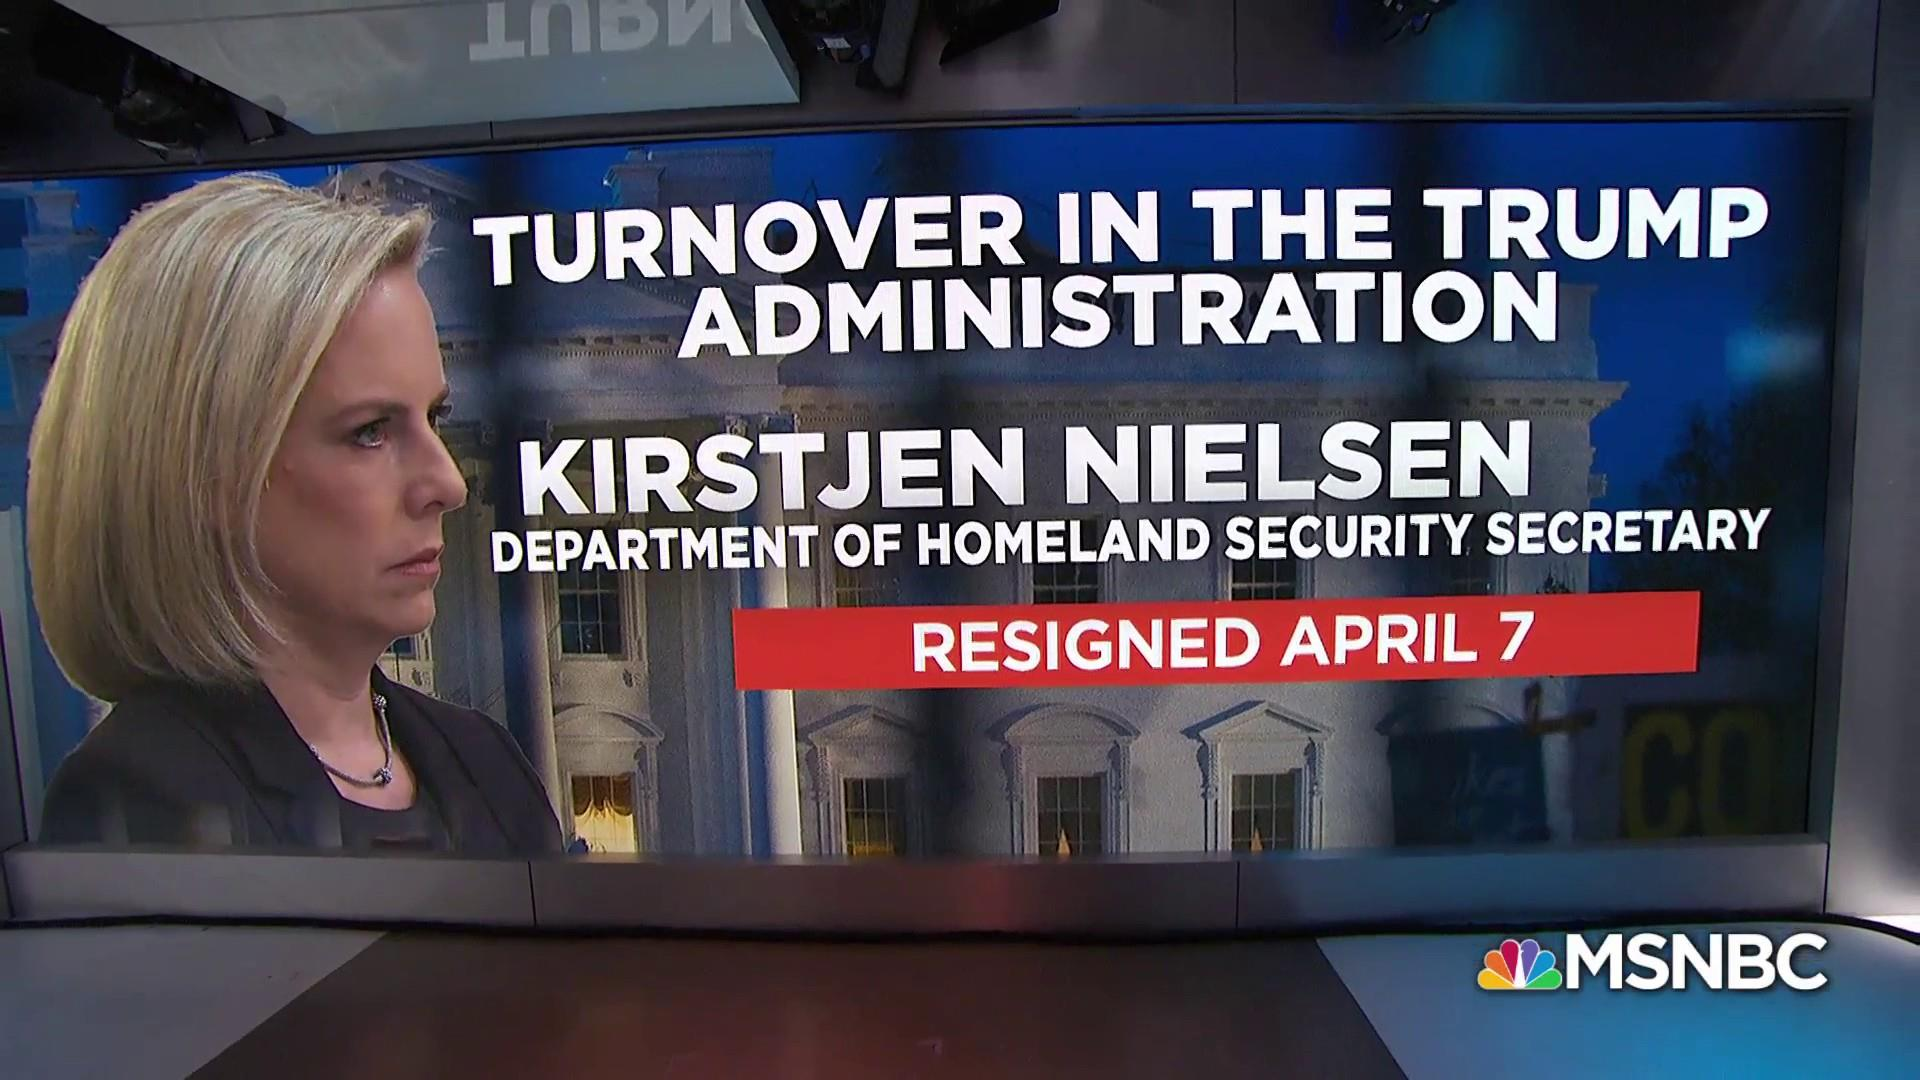 What is Secretary Kirstjen Nielsen's legacy?